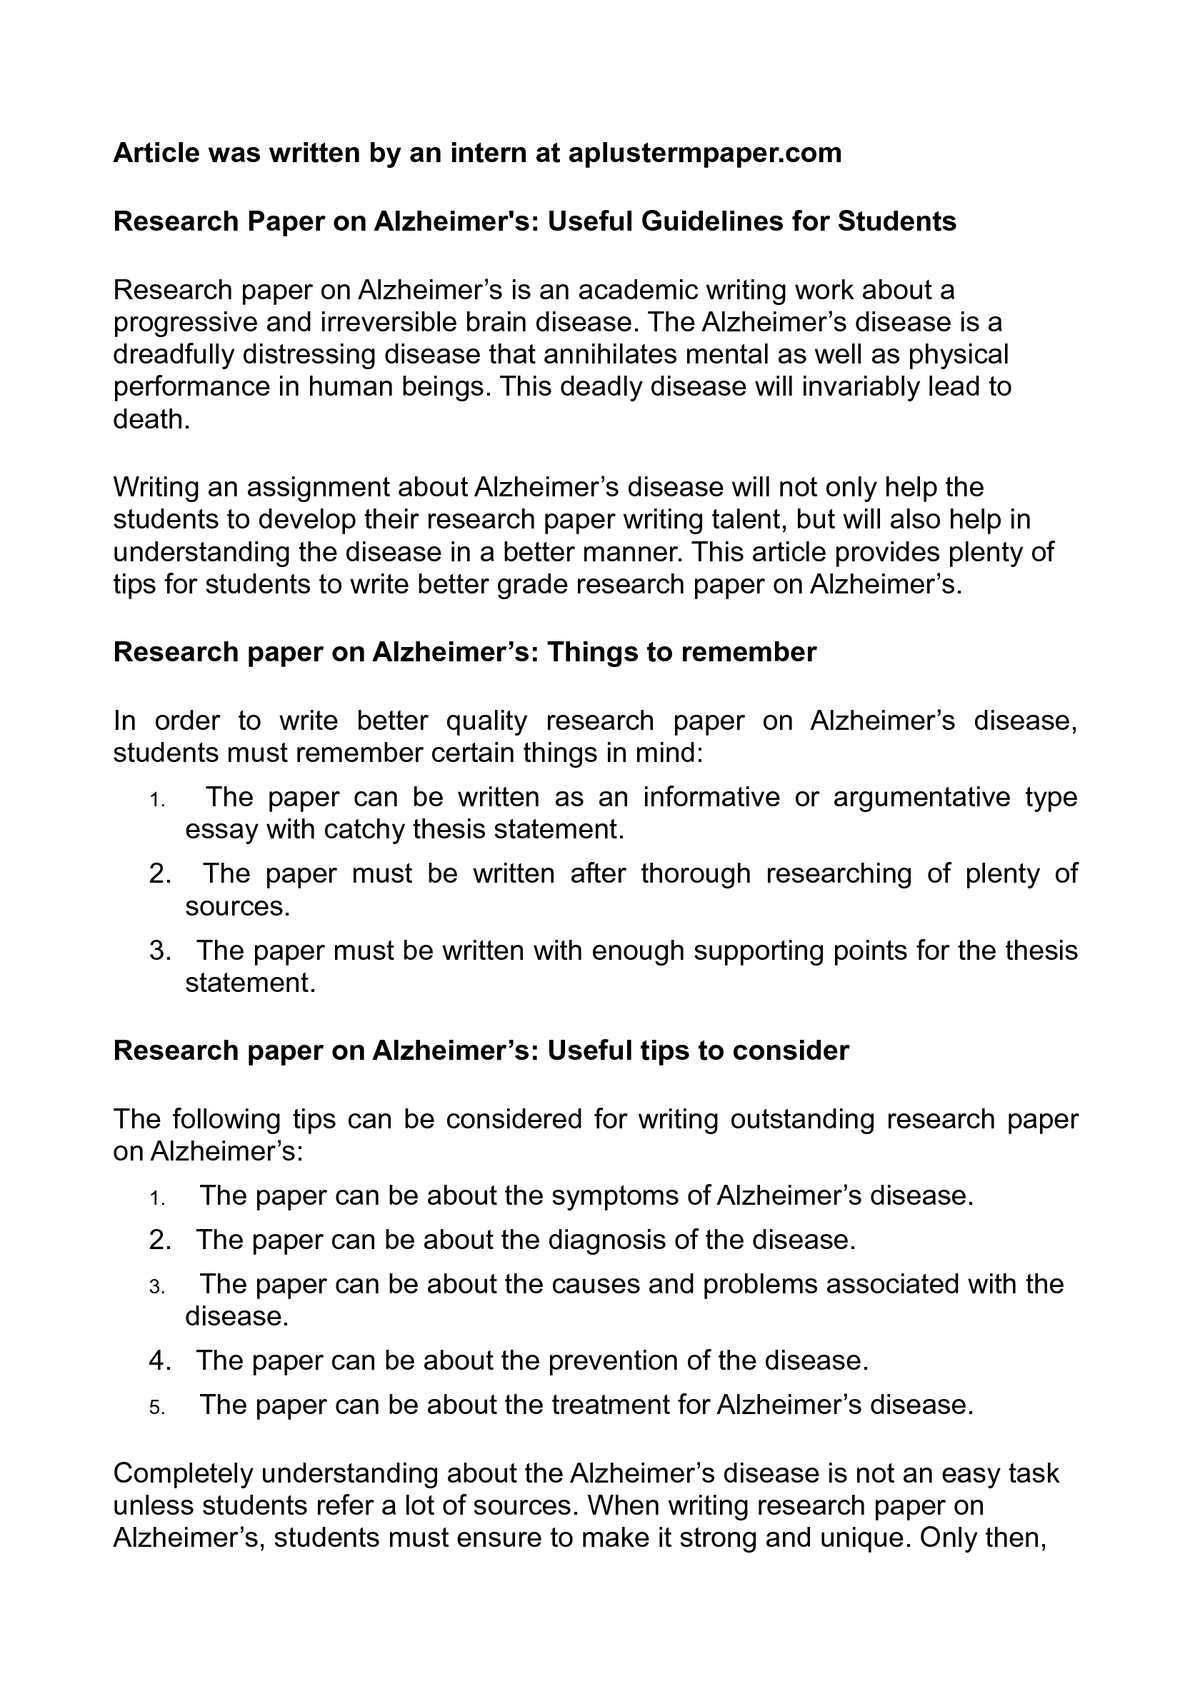 calam eacute o research paper on alzheimer s useful guidelines for calameacuteo research paper on alzheimer s useful guidelines for students